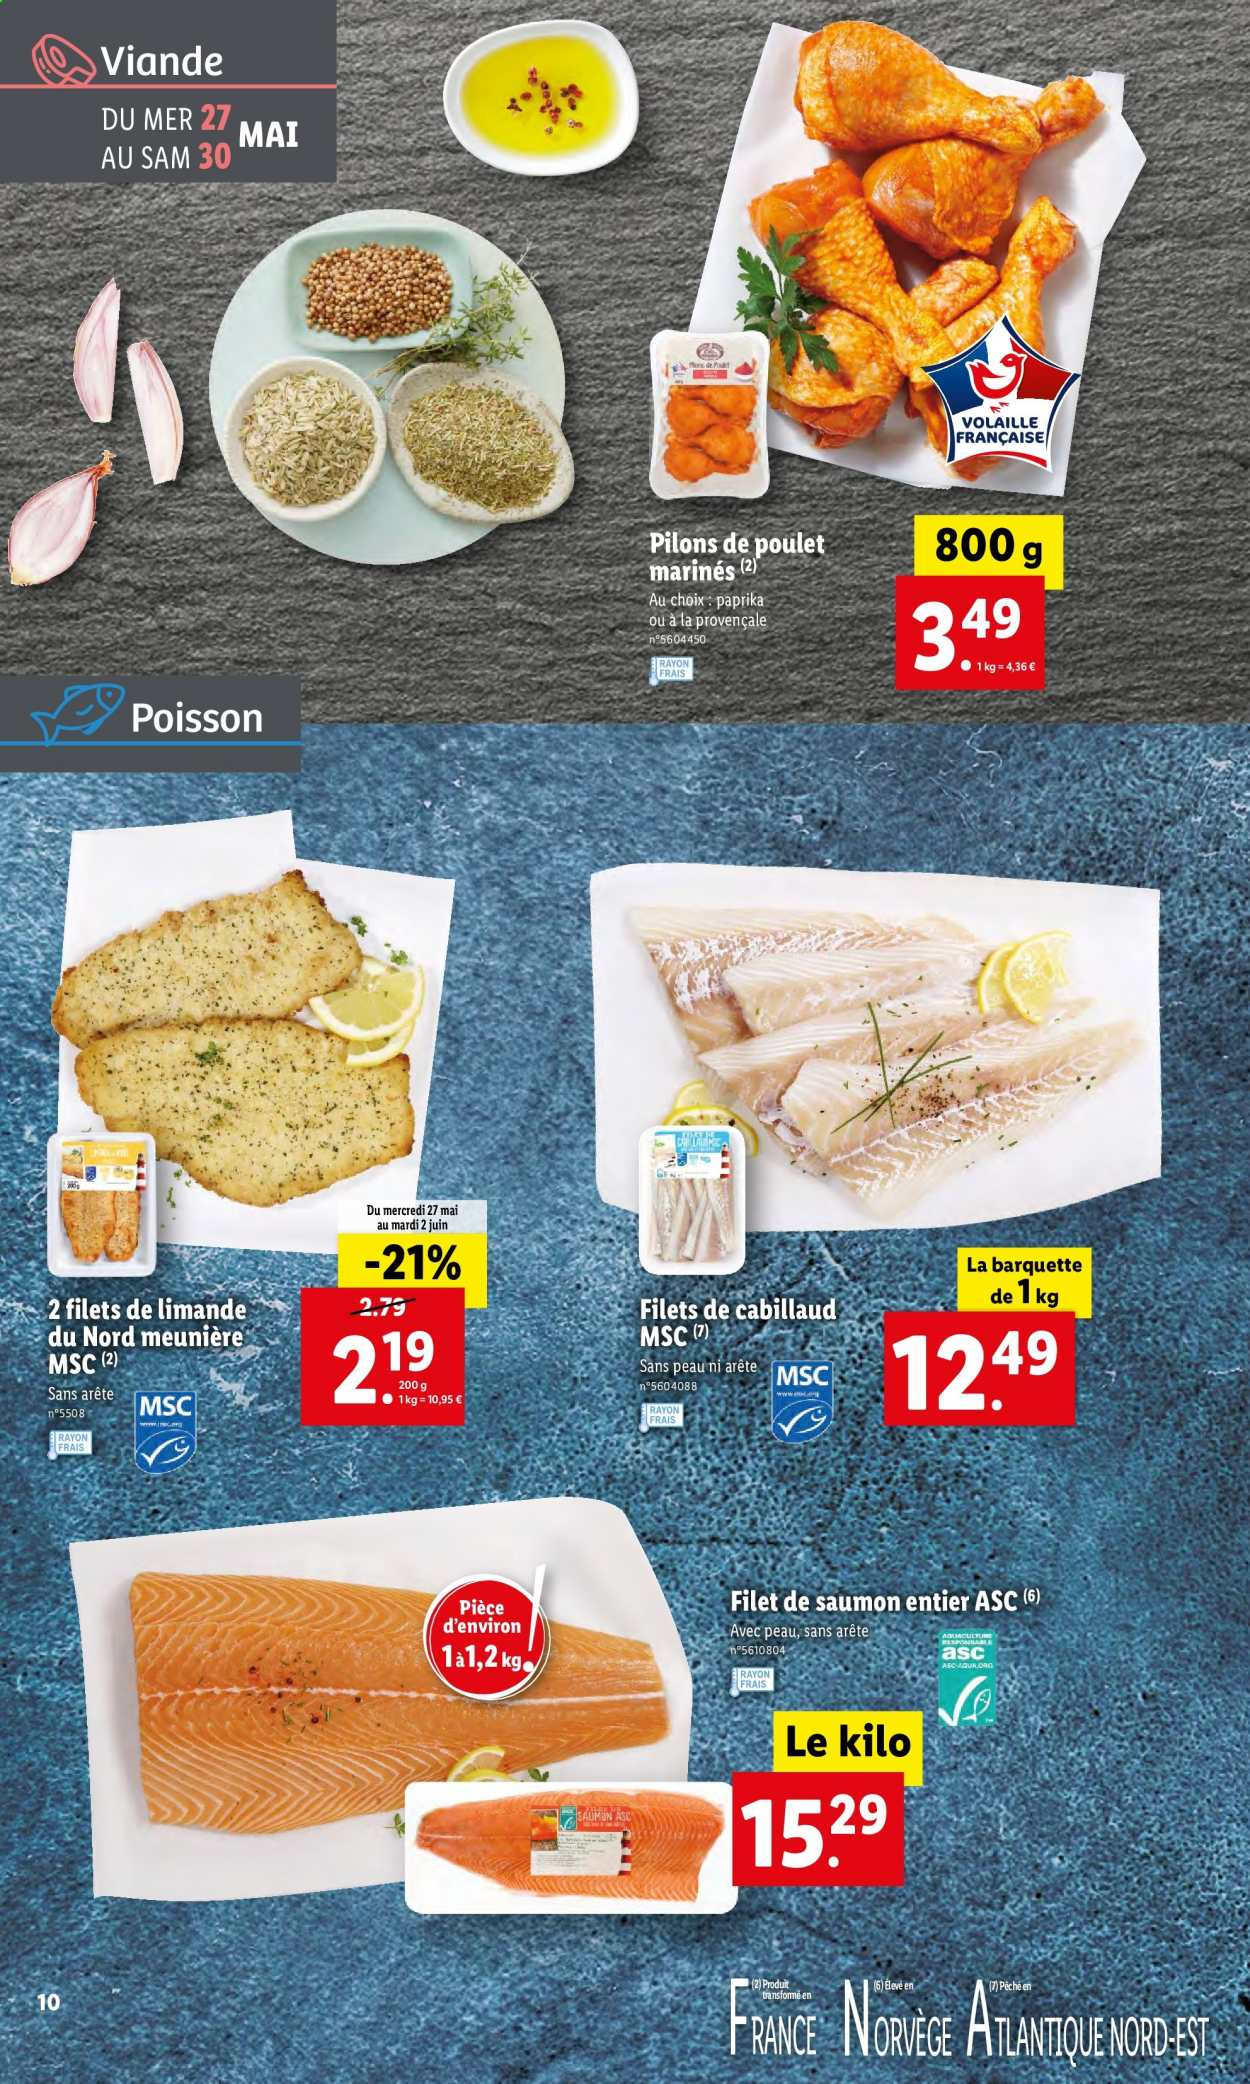 Catalogue Lidl - 27.05.2020 - 02.06.2020. Page 10.